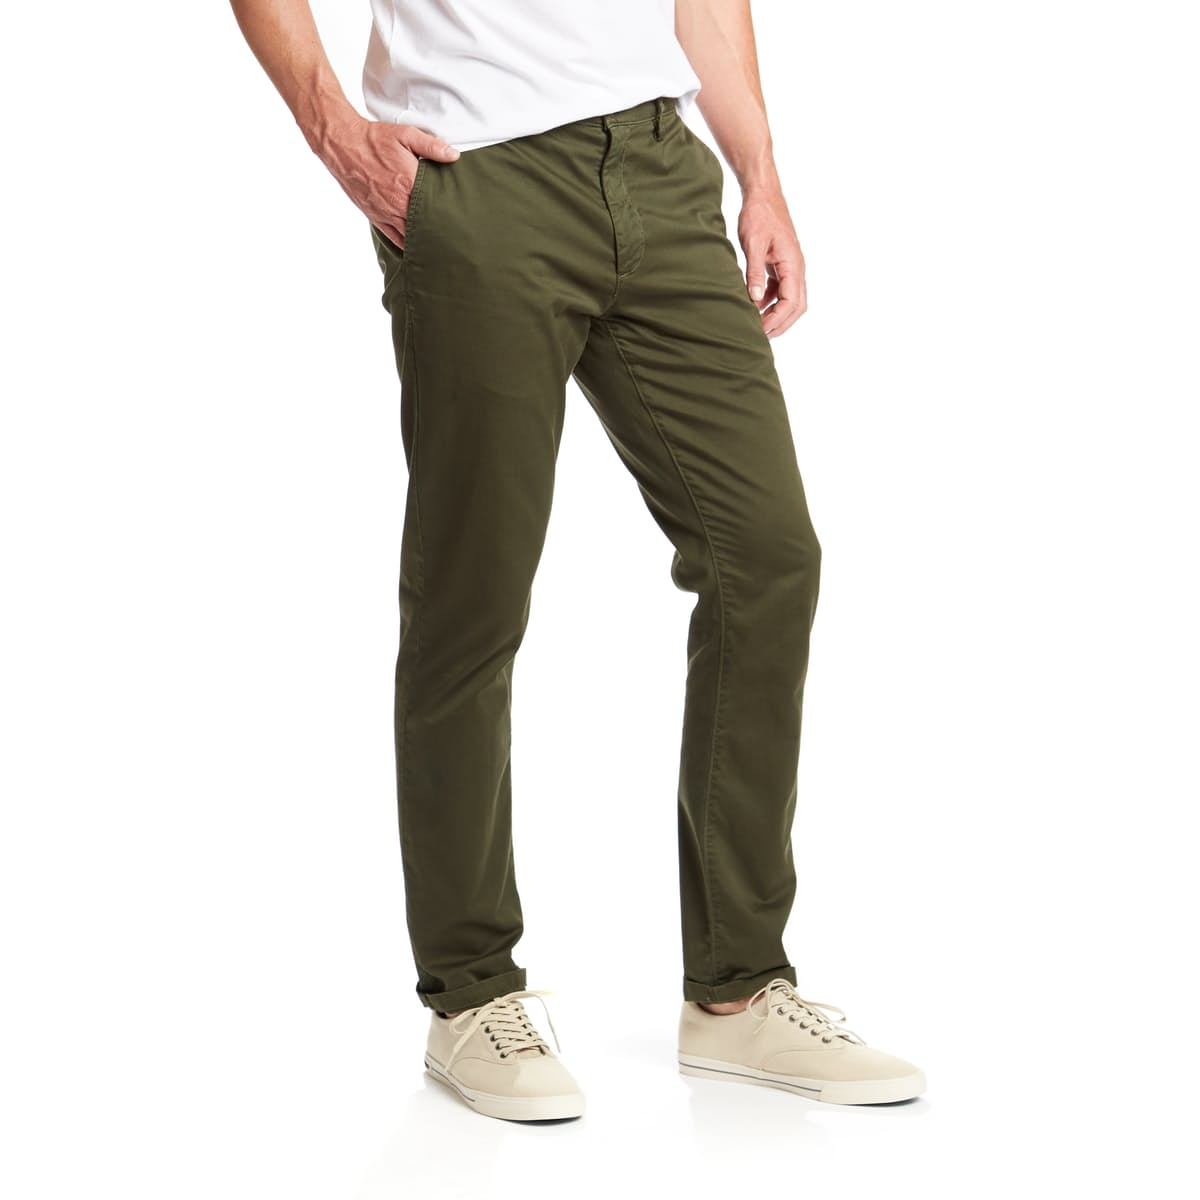 EG Style Staples: Flint and Tinder Cool Olive Chinos